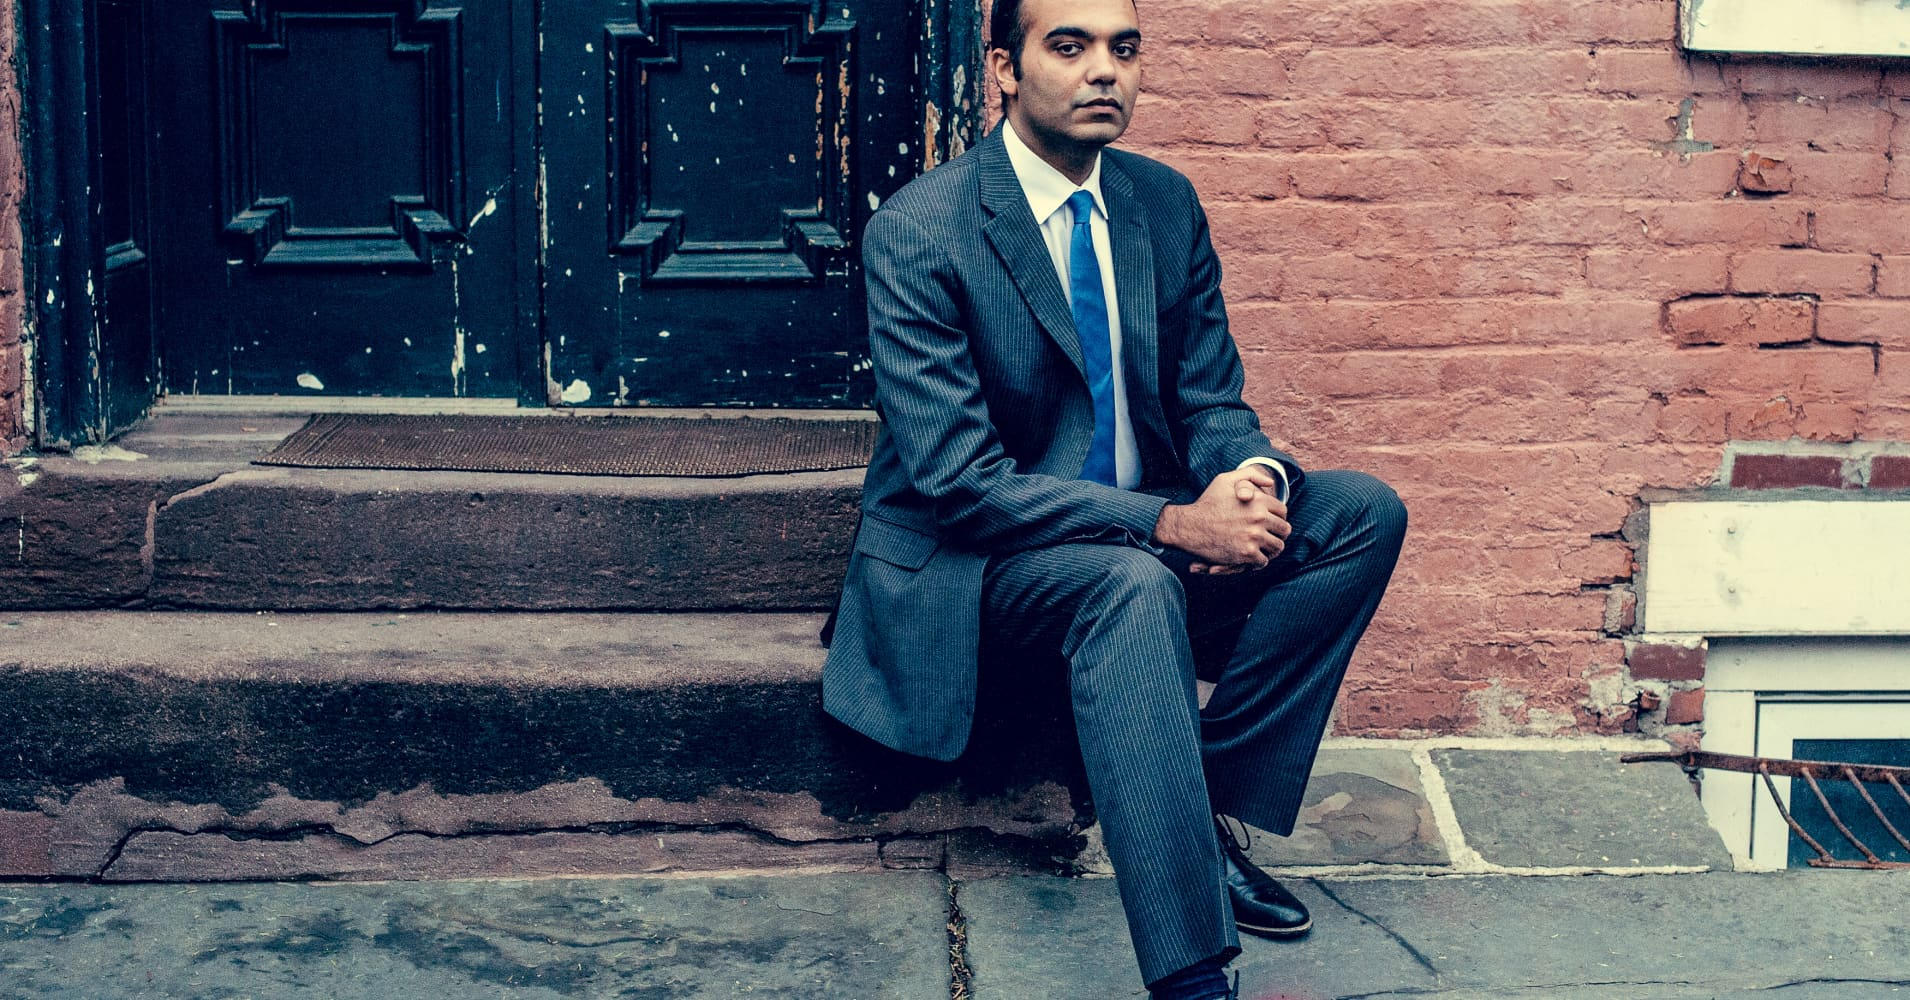 Rohit Chopra, former student loan ombudsman for the Consumer Financial Protection Bureau, which has filed suit against the nation's largest student loan servicer.